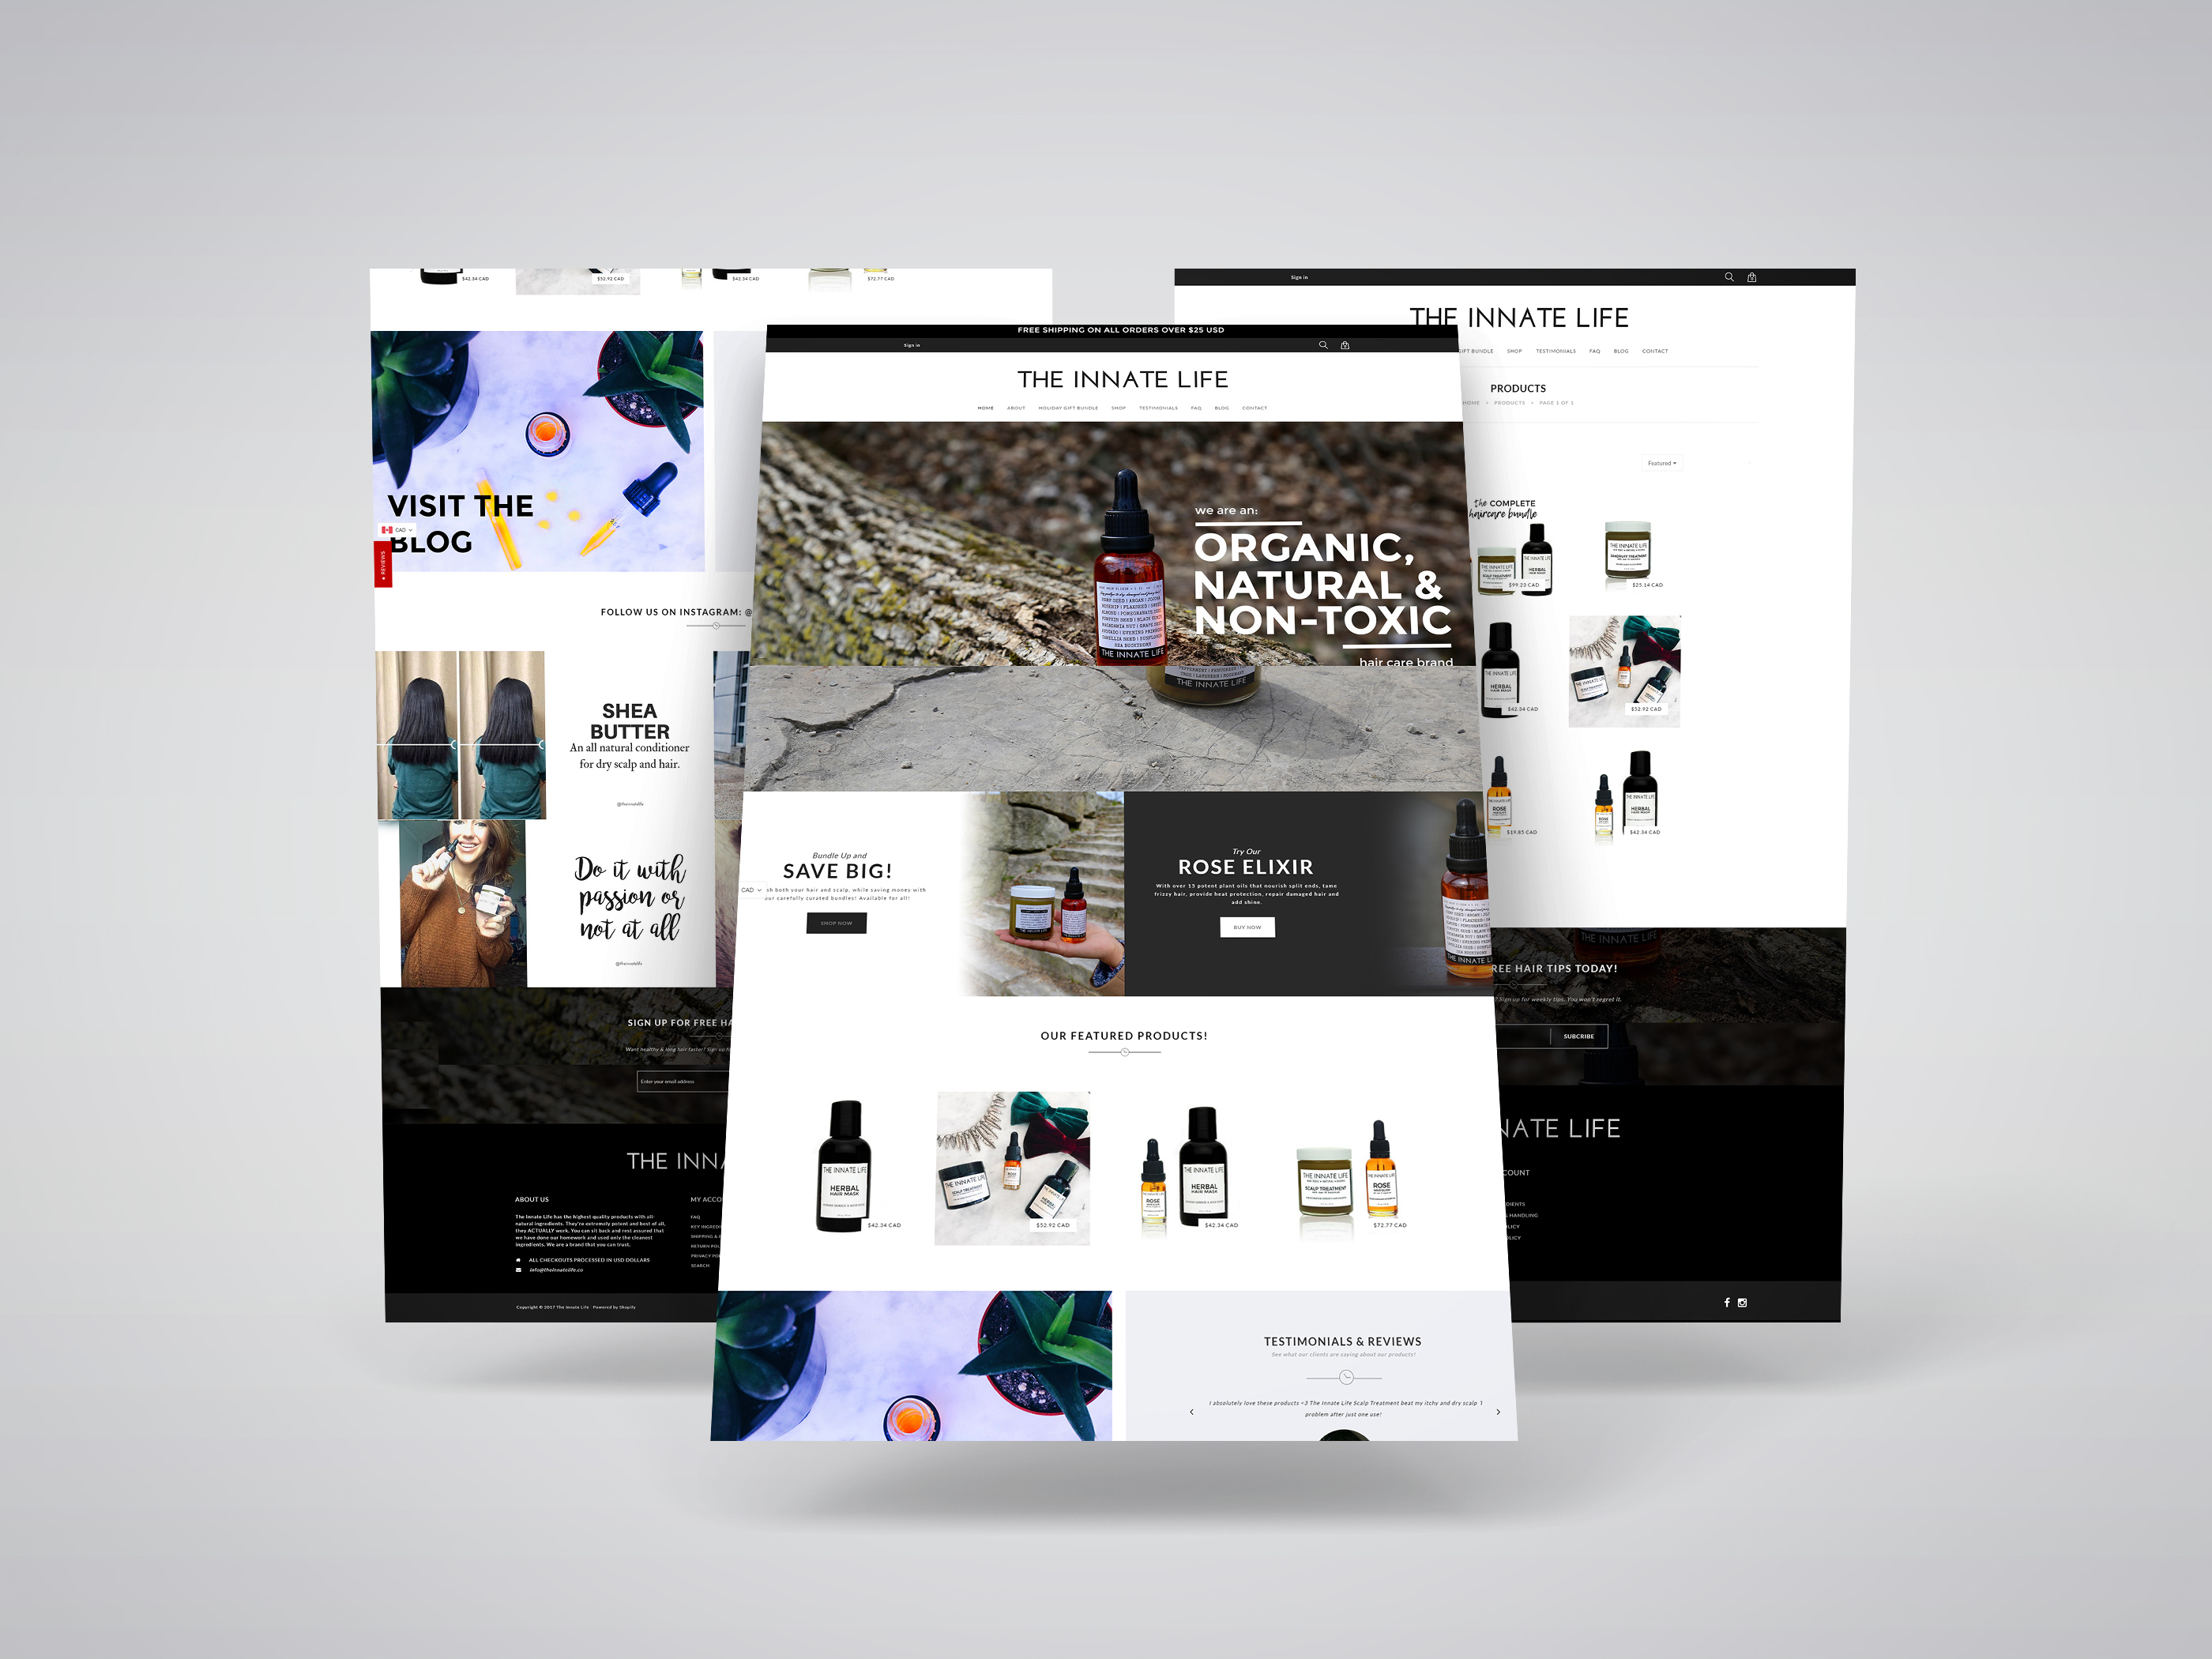 The Innate Life Shopify Website Re-Design